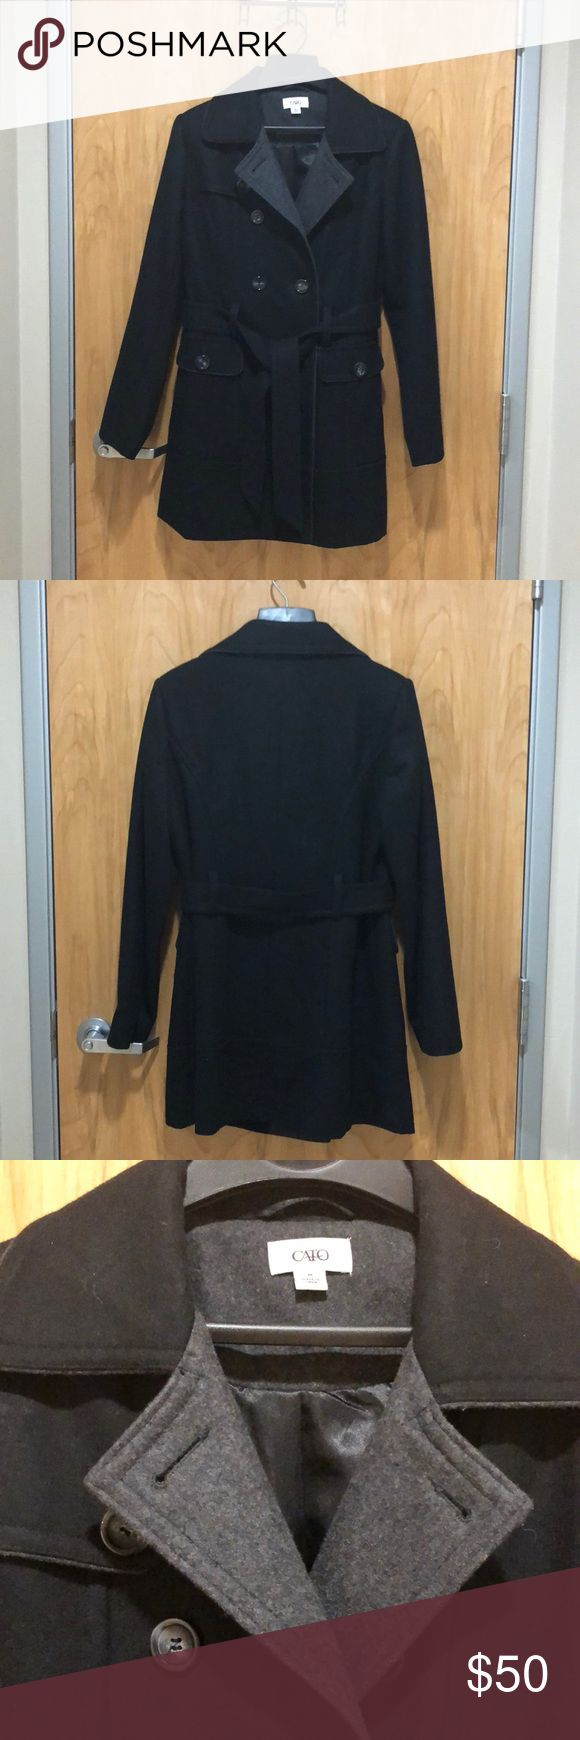 Like New Wool Blend Black Trench Coat Very nice wool blend trench in black. Size medium. Worn maybe 5 times at most.  Length: 32 inches Cato Jackets & Coats Trench Coats